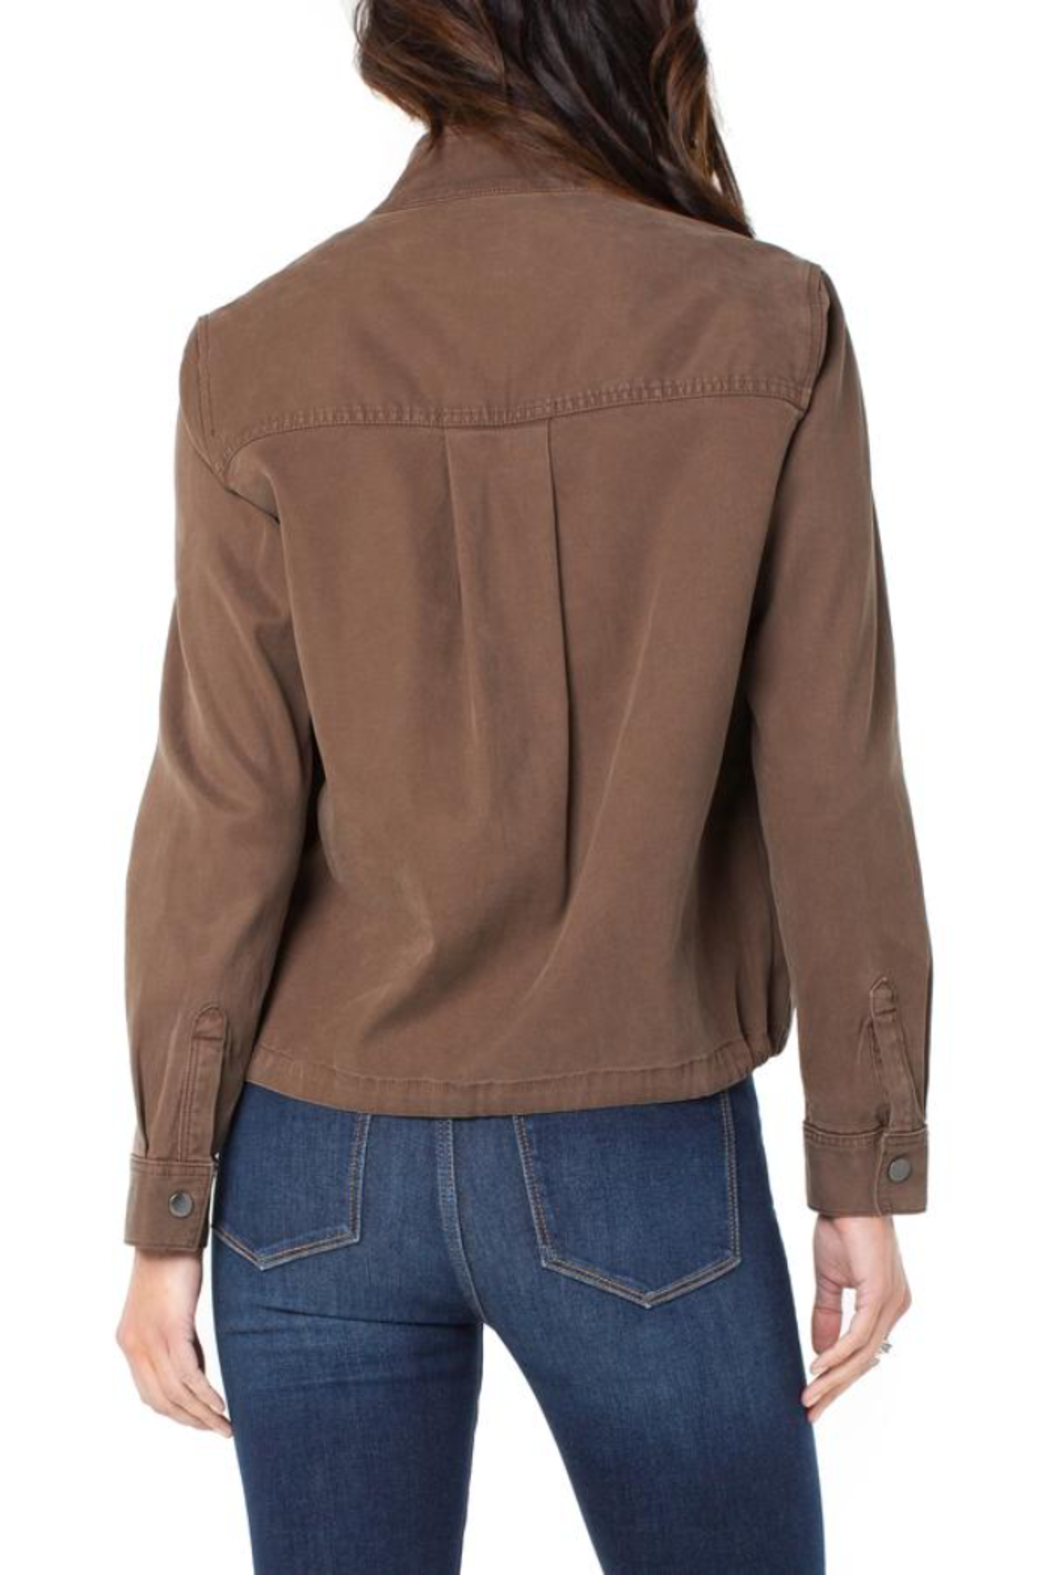 Liverpool  Cinch Waist Jacket With Patch Pockets - Side Cropped Image